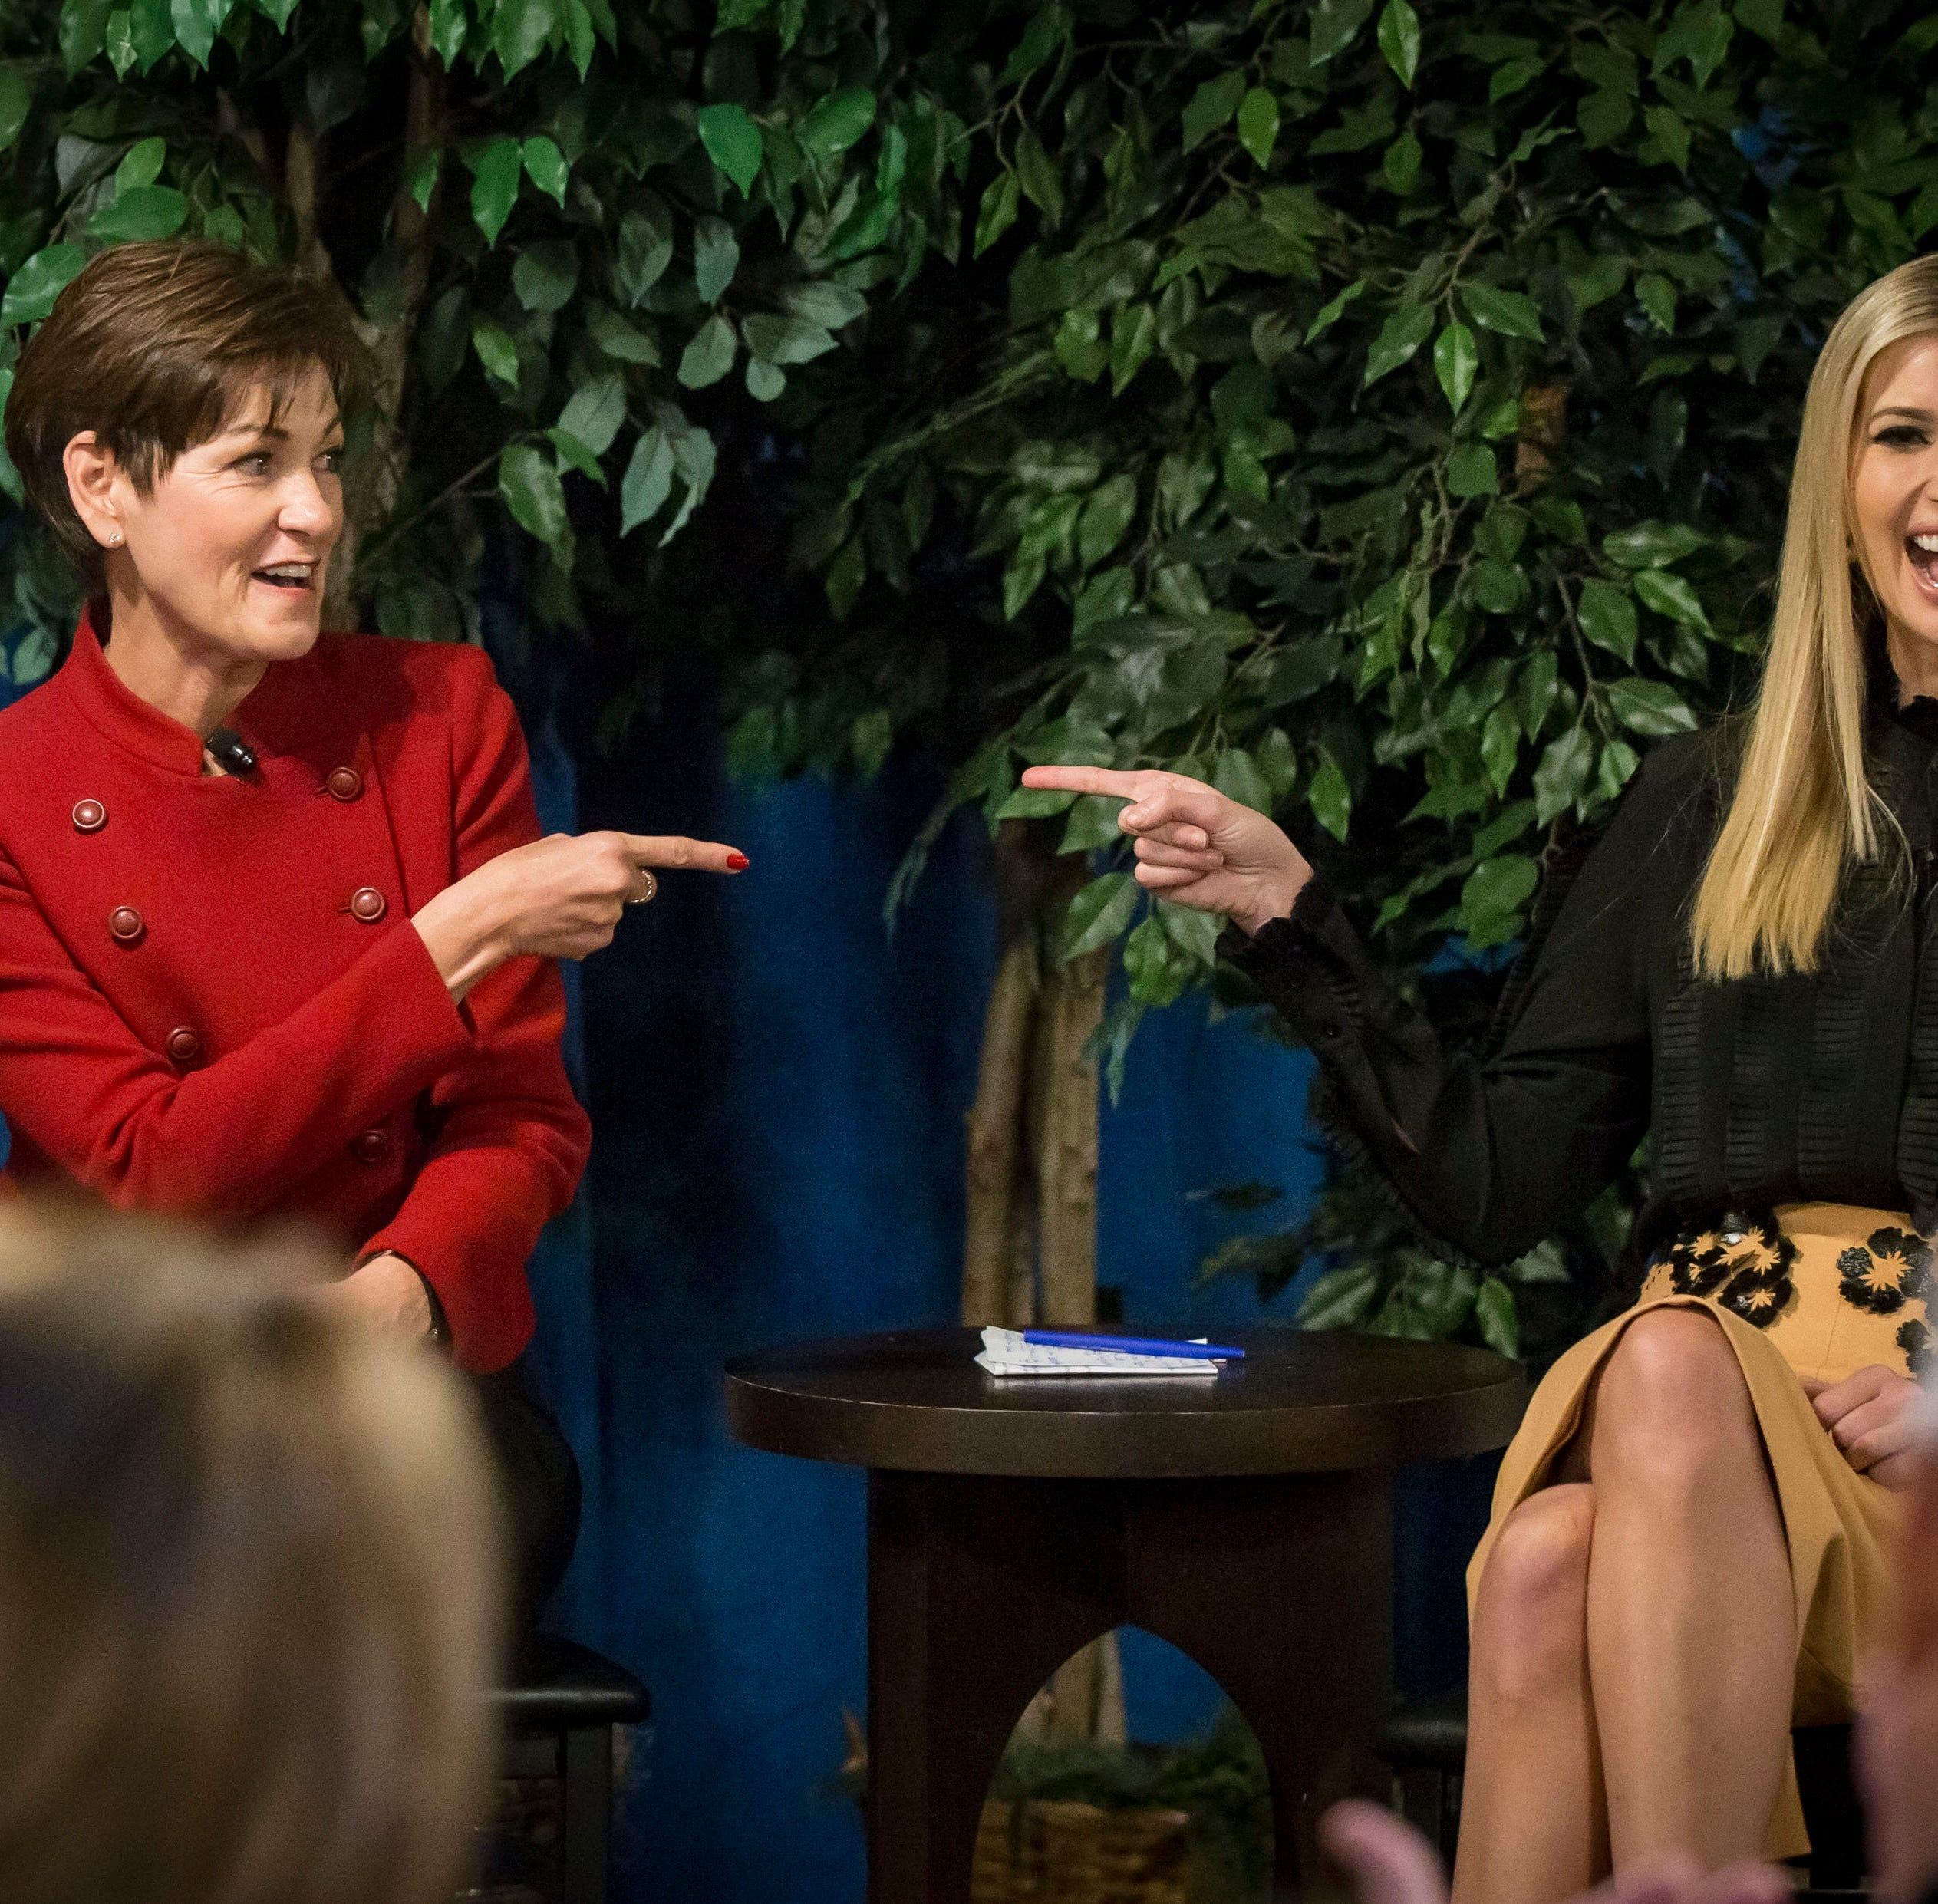 Iowa Gov. Reynolds and Ivanka Trump share a laugh during a campaign event at Salt of the Hearth in West Des Moines, Iowa, Friday, Nov. 2, 2018.